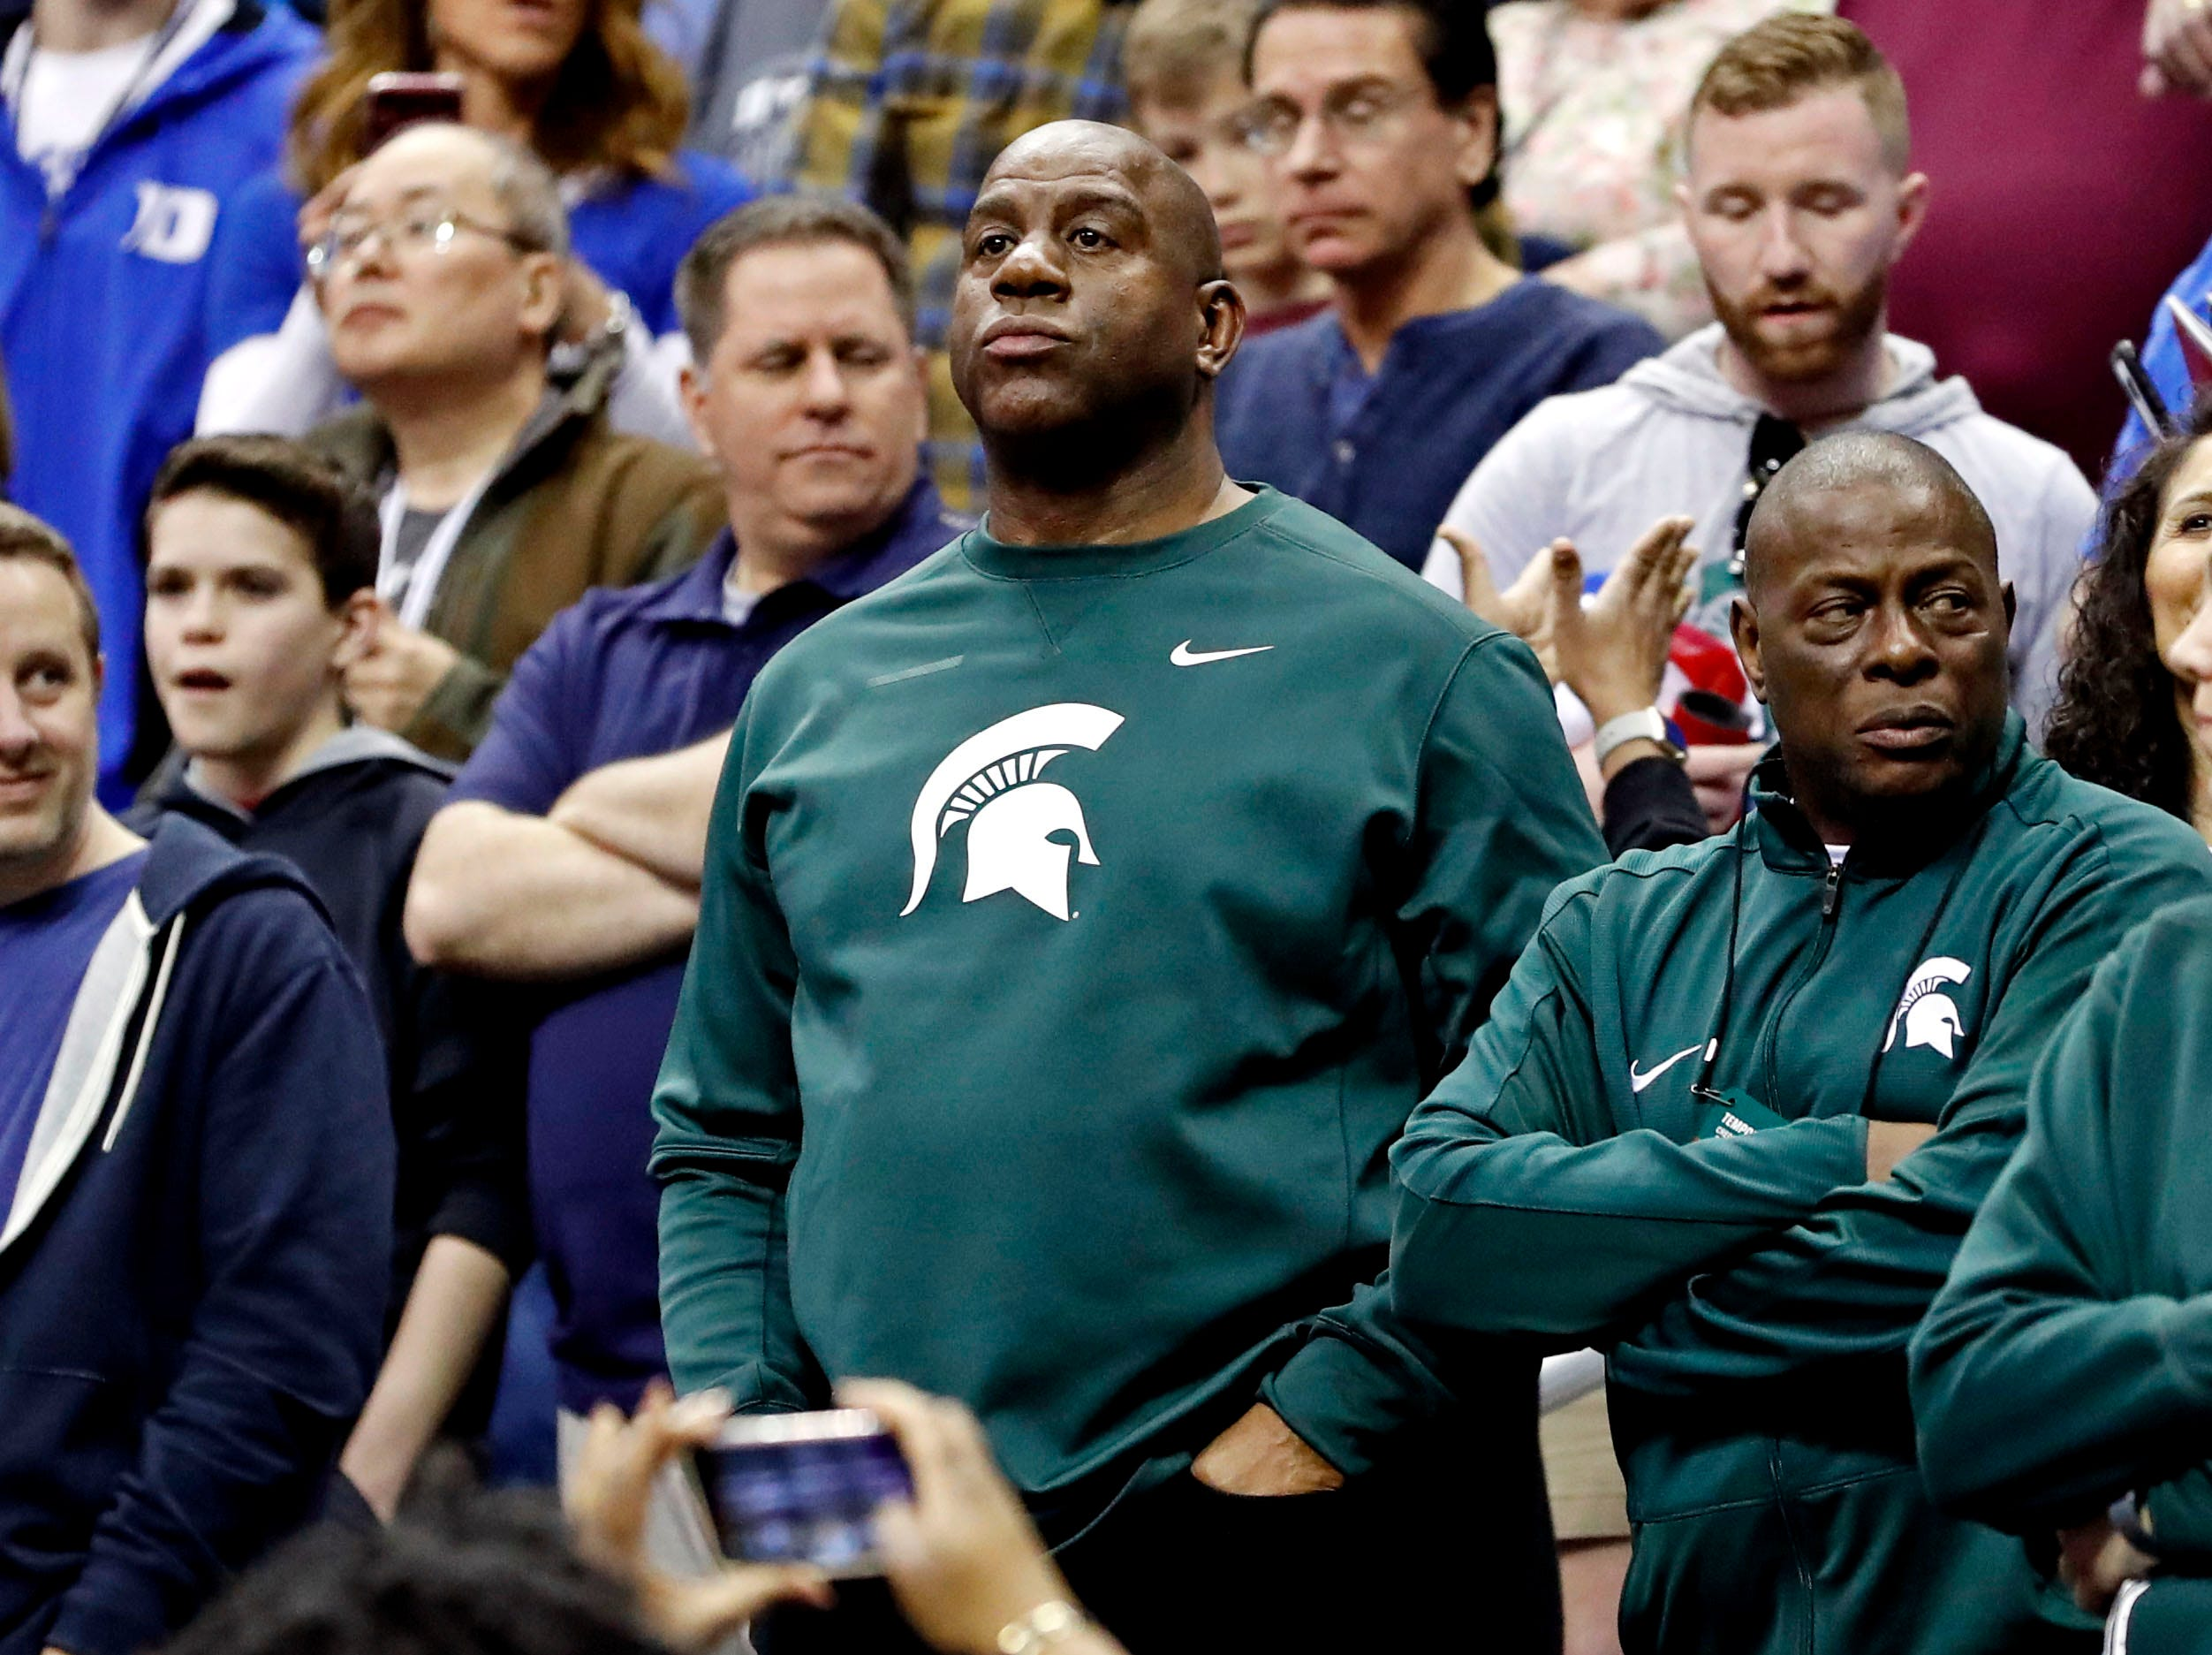 Mar 31, 2019; Washington, DC, USA; Michigan State Spartans former player Magic Johnson watches during the first half in the championship game of the east regional of the 2019 NCAA Tournament against the Duke Blue Devils at Capital One Arena. Mandatory Credit: Geoff Burke-USA TODAY Sports